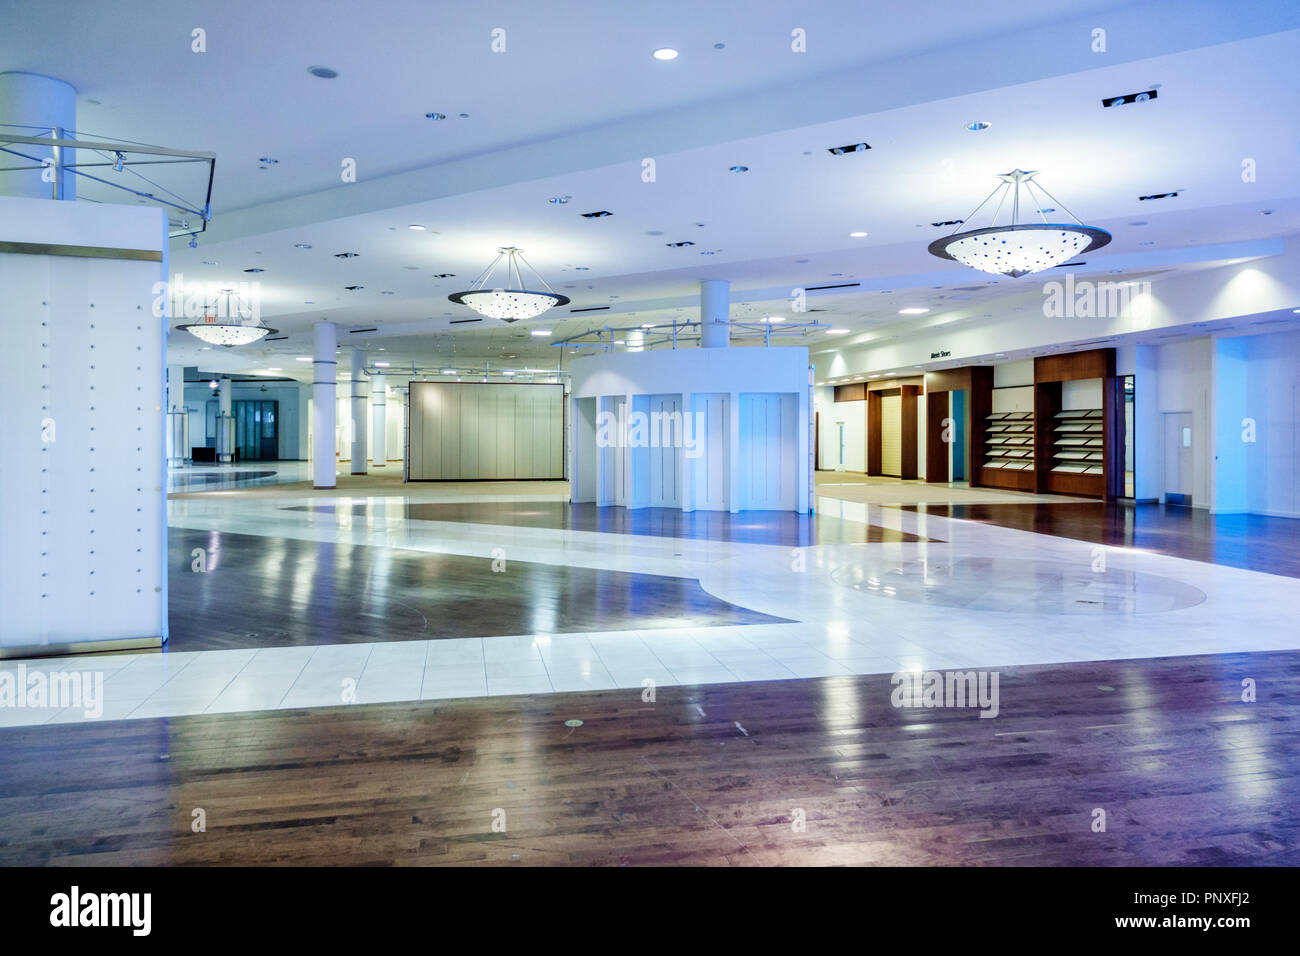 West Palm Beach Florida City Place CityPlace closed empty Macy's Department Store interior - Stock Image